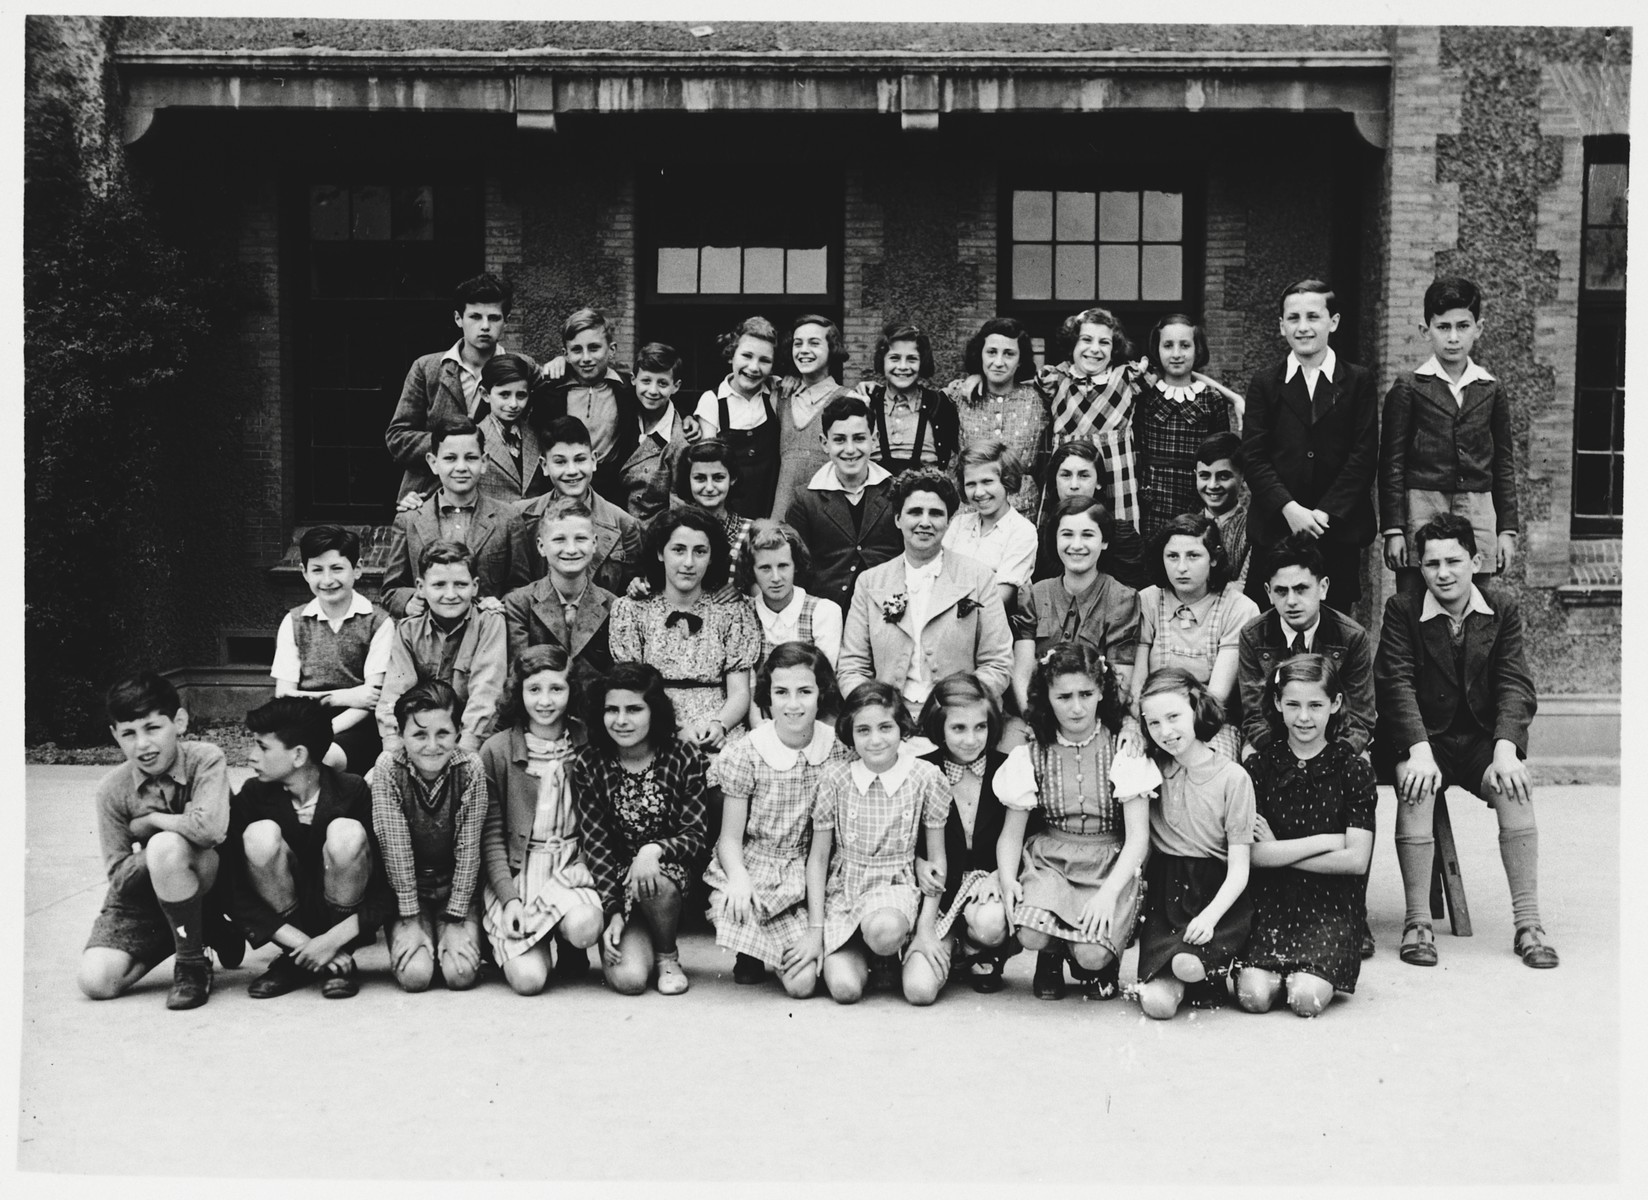 Group portrait of German-Jewish refugee children at their school in Shanghai.